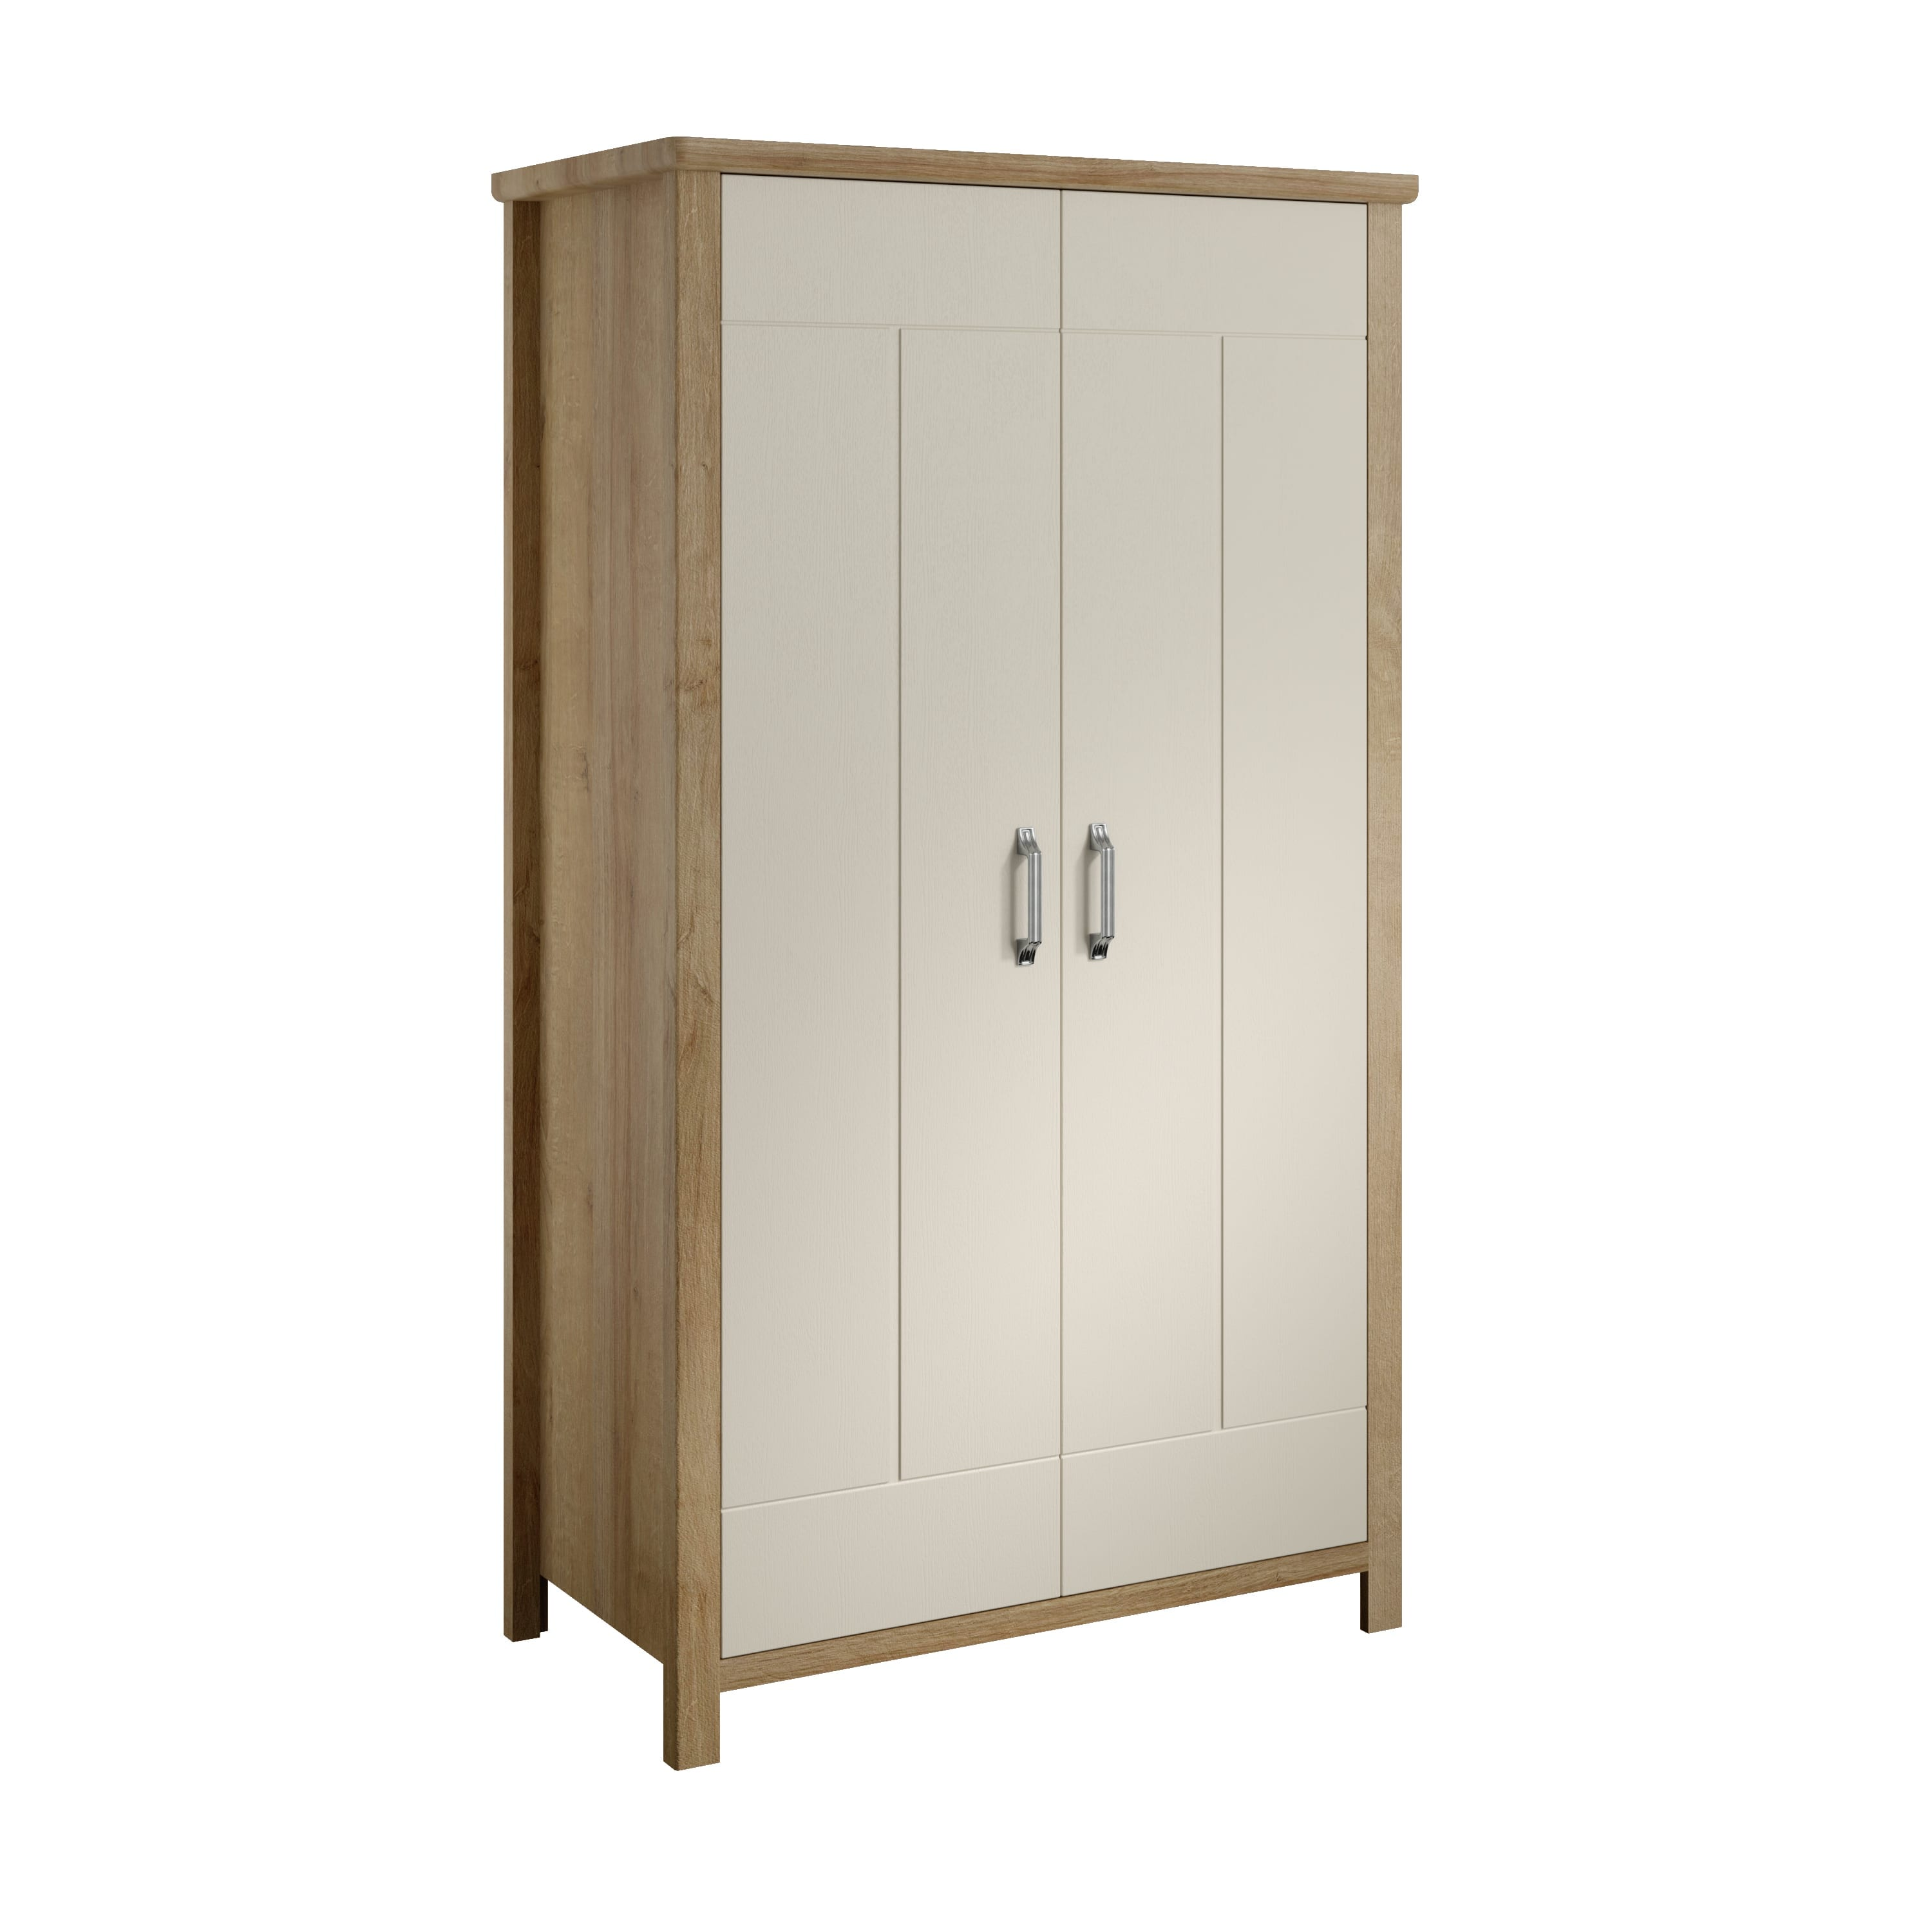 Stratford quot wide double wardrobe let us furnish